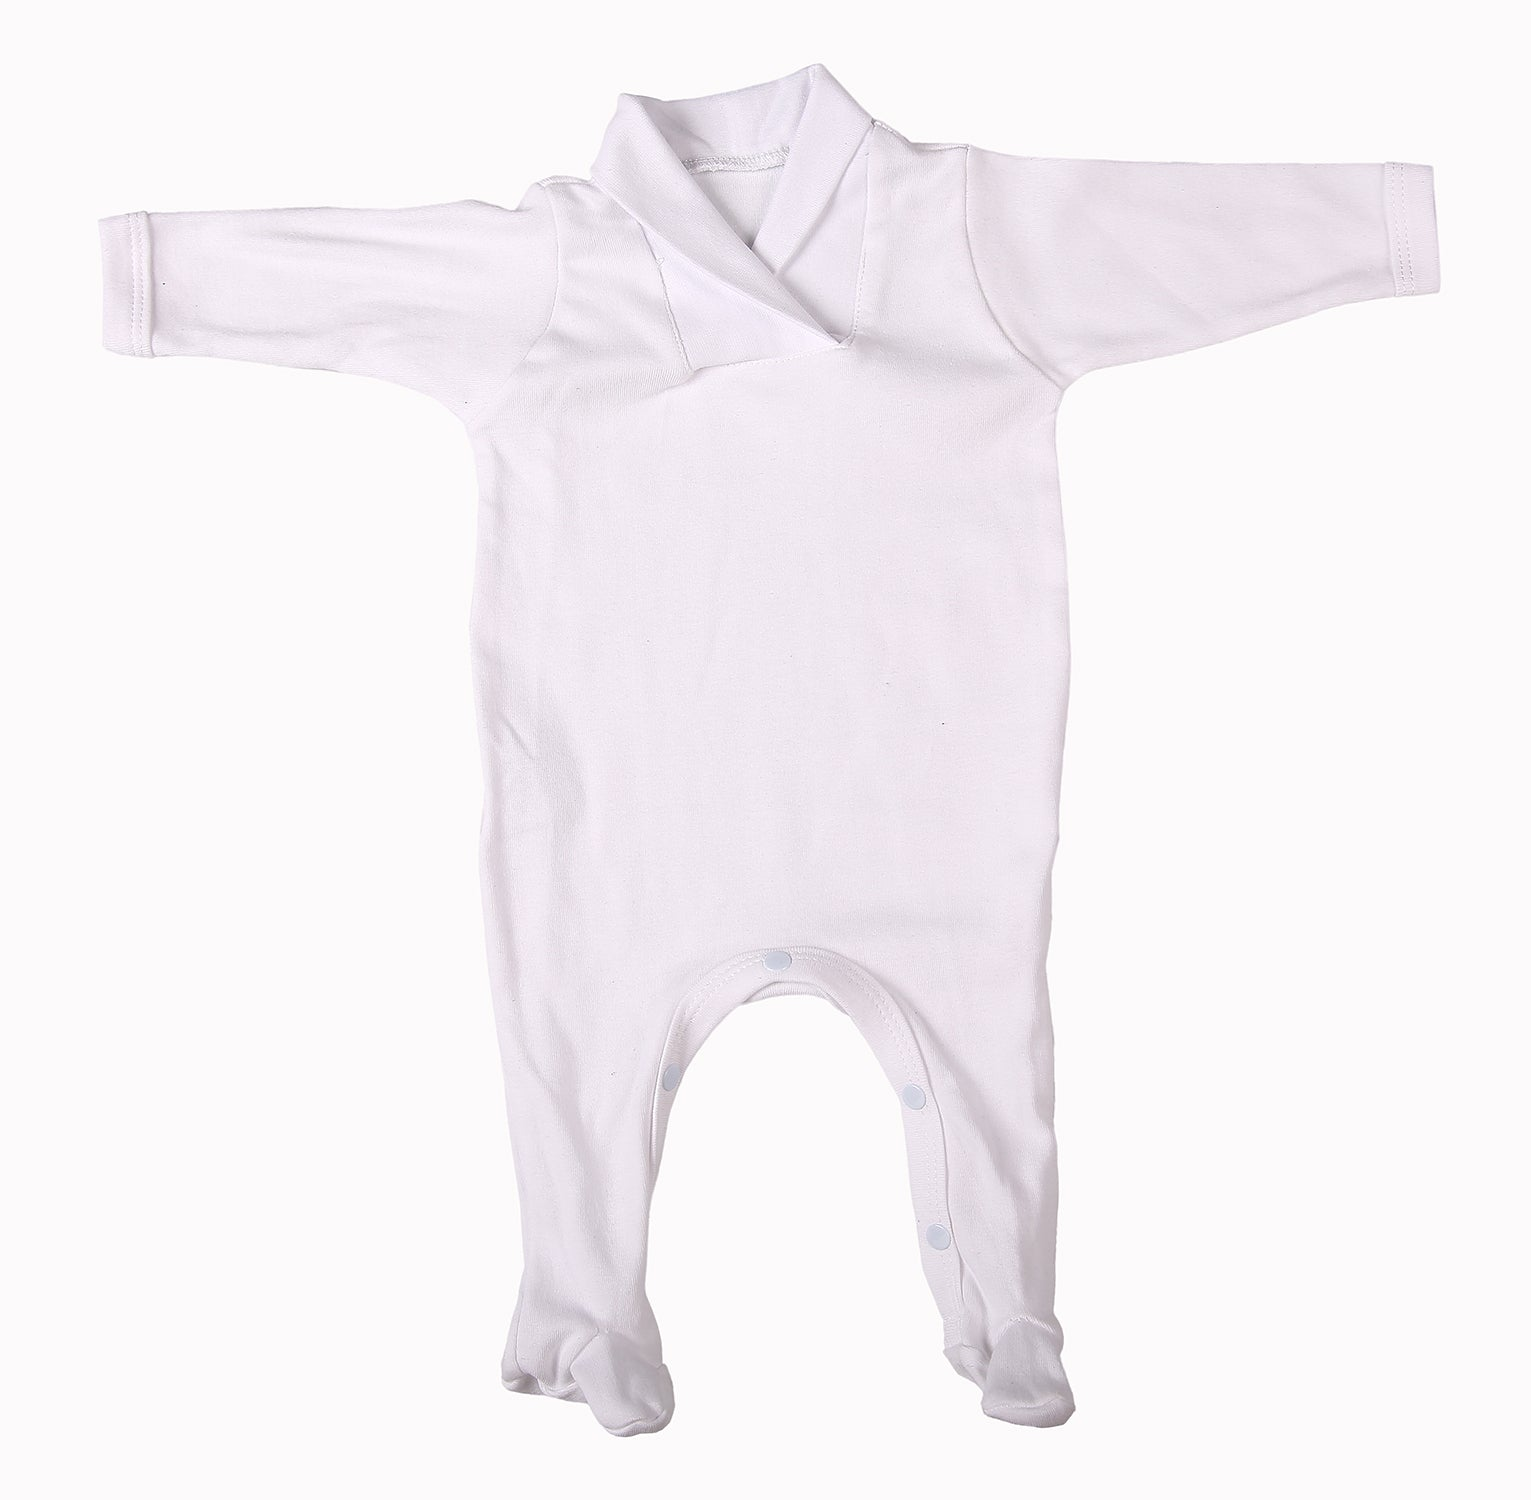 Baby Blanks - Babygro Crossover Collar (2 Pack or 6 pack)